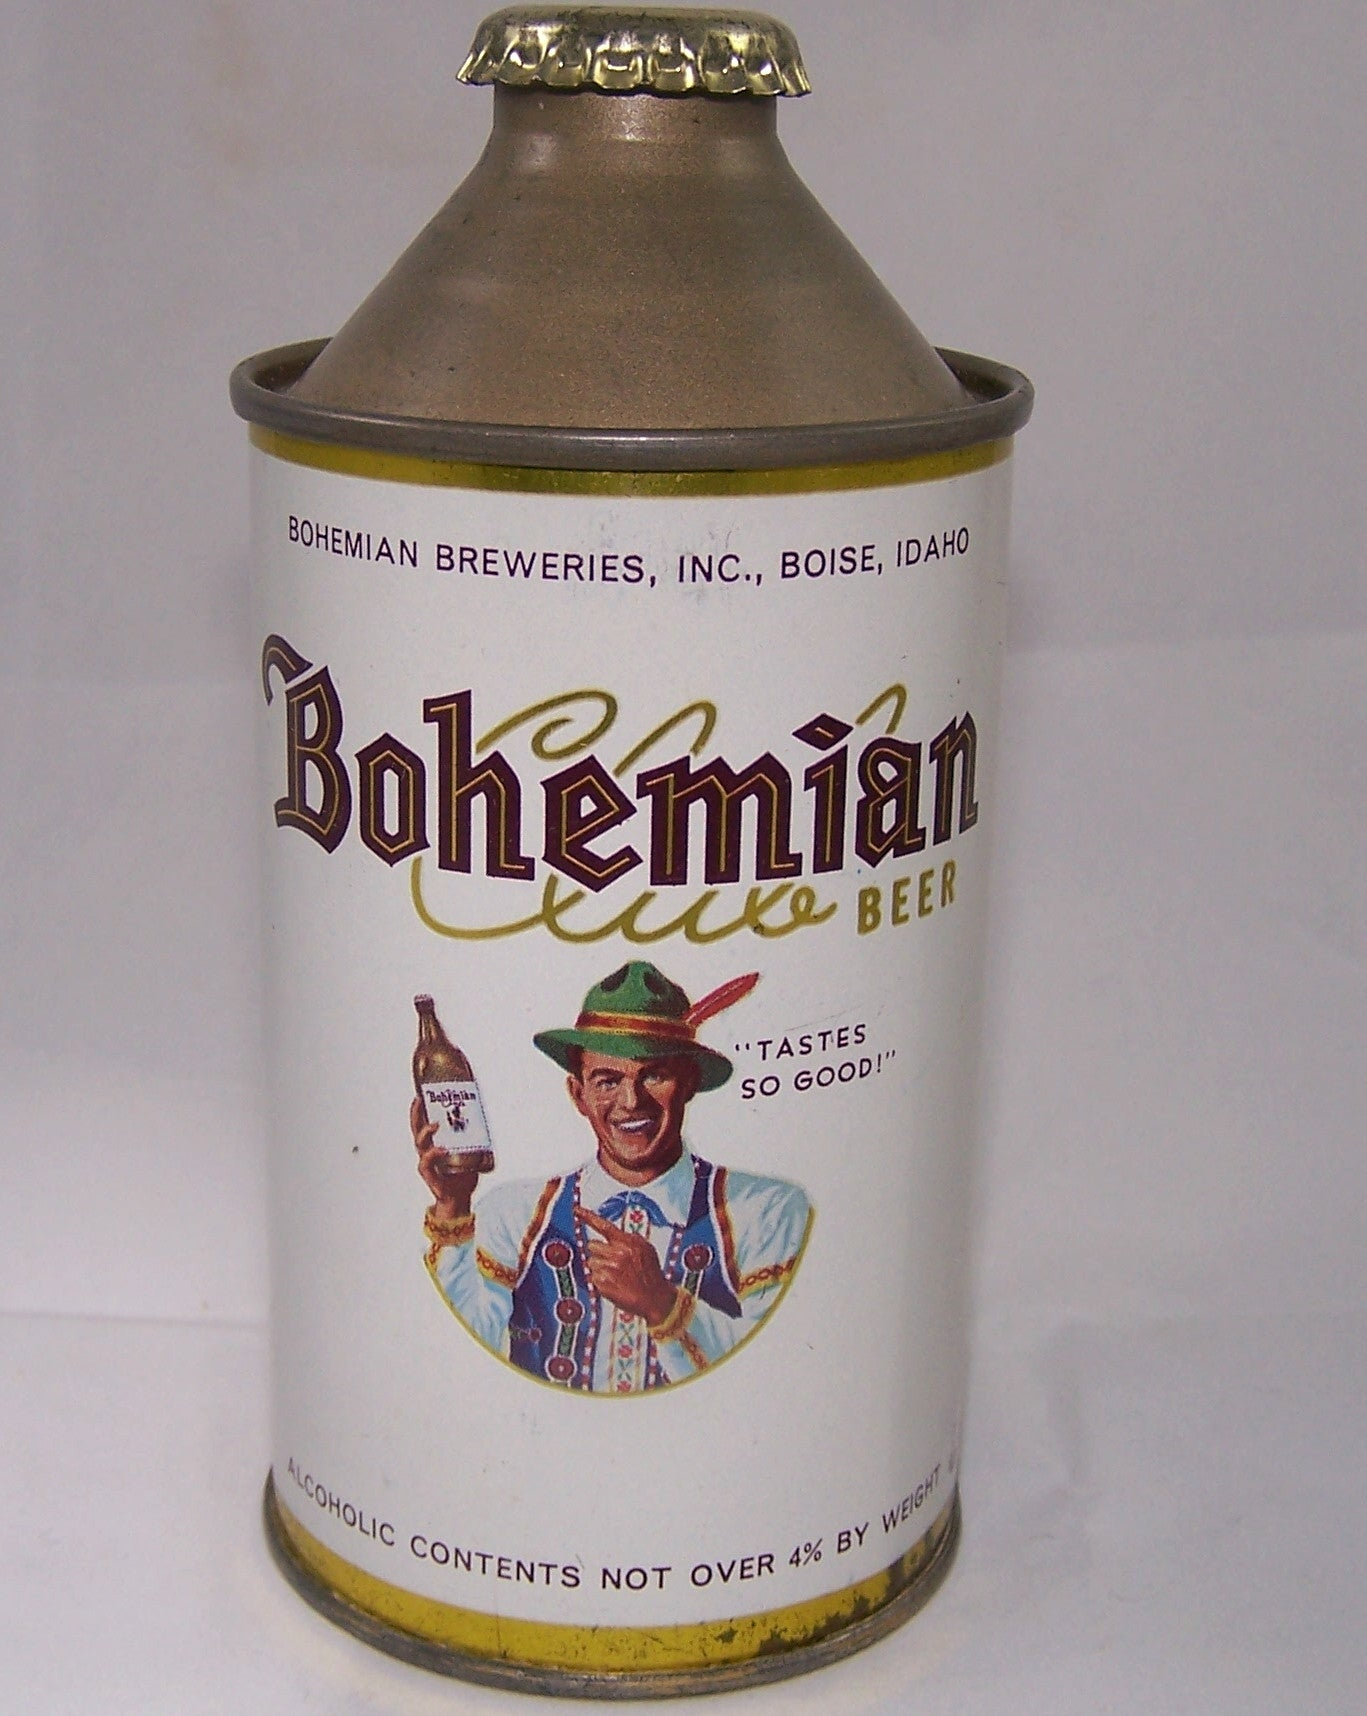 Bohemian Club N.O 4% Alc, USBC 154-3, Rolled Can, Grade 1/1+ Sold 4/12/15